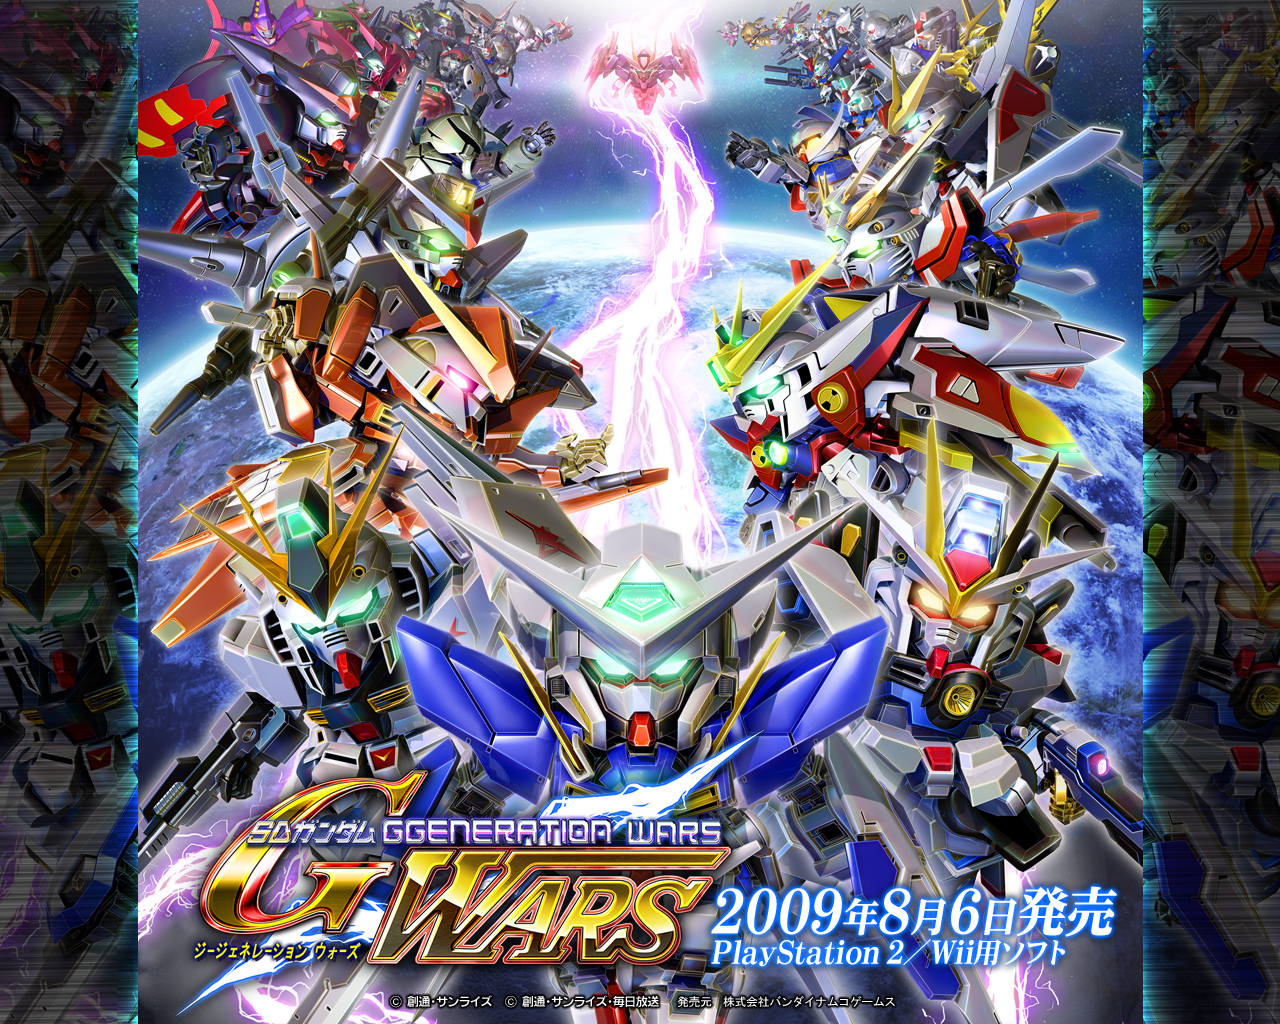 SD Gundam G Generation Wars wallpaper SRW Hotnews 1280x1024